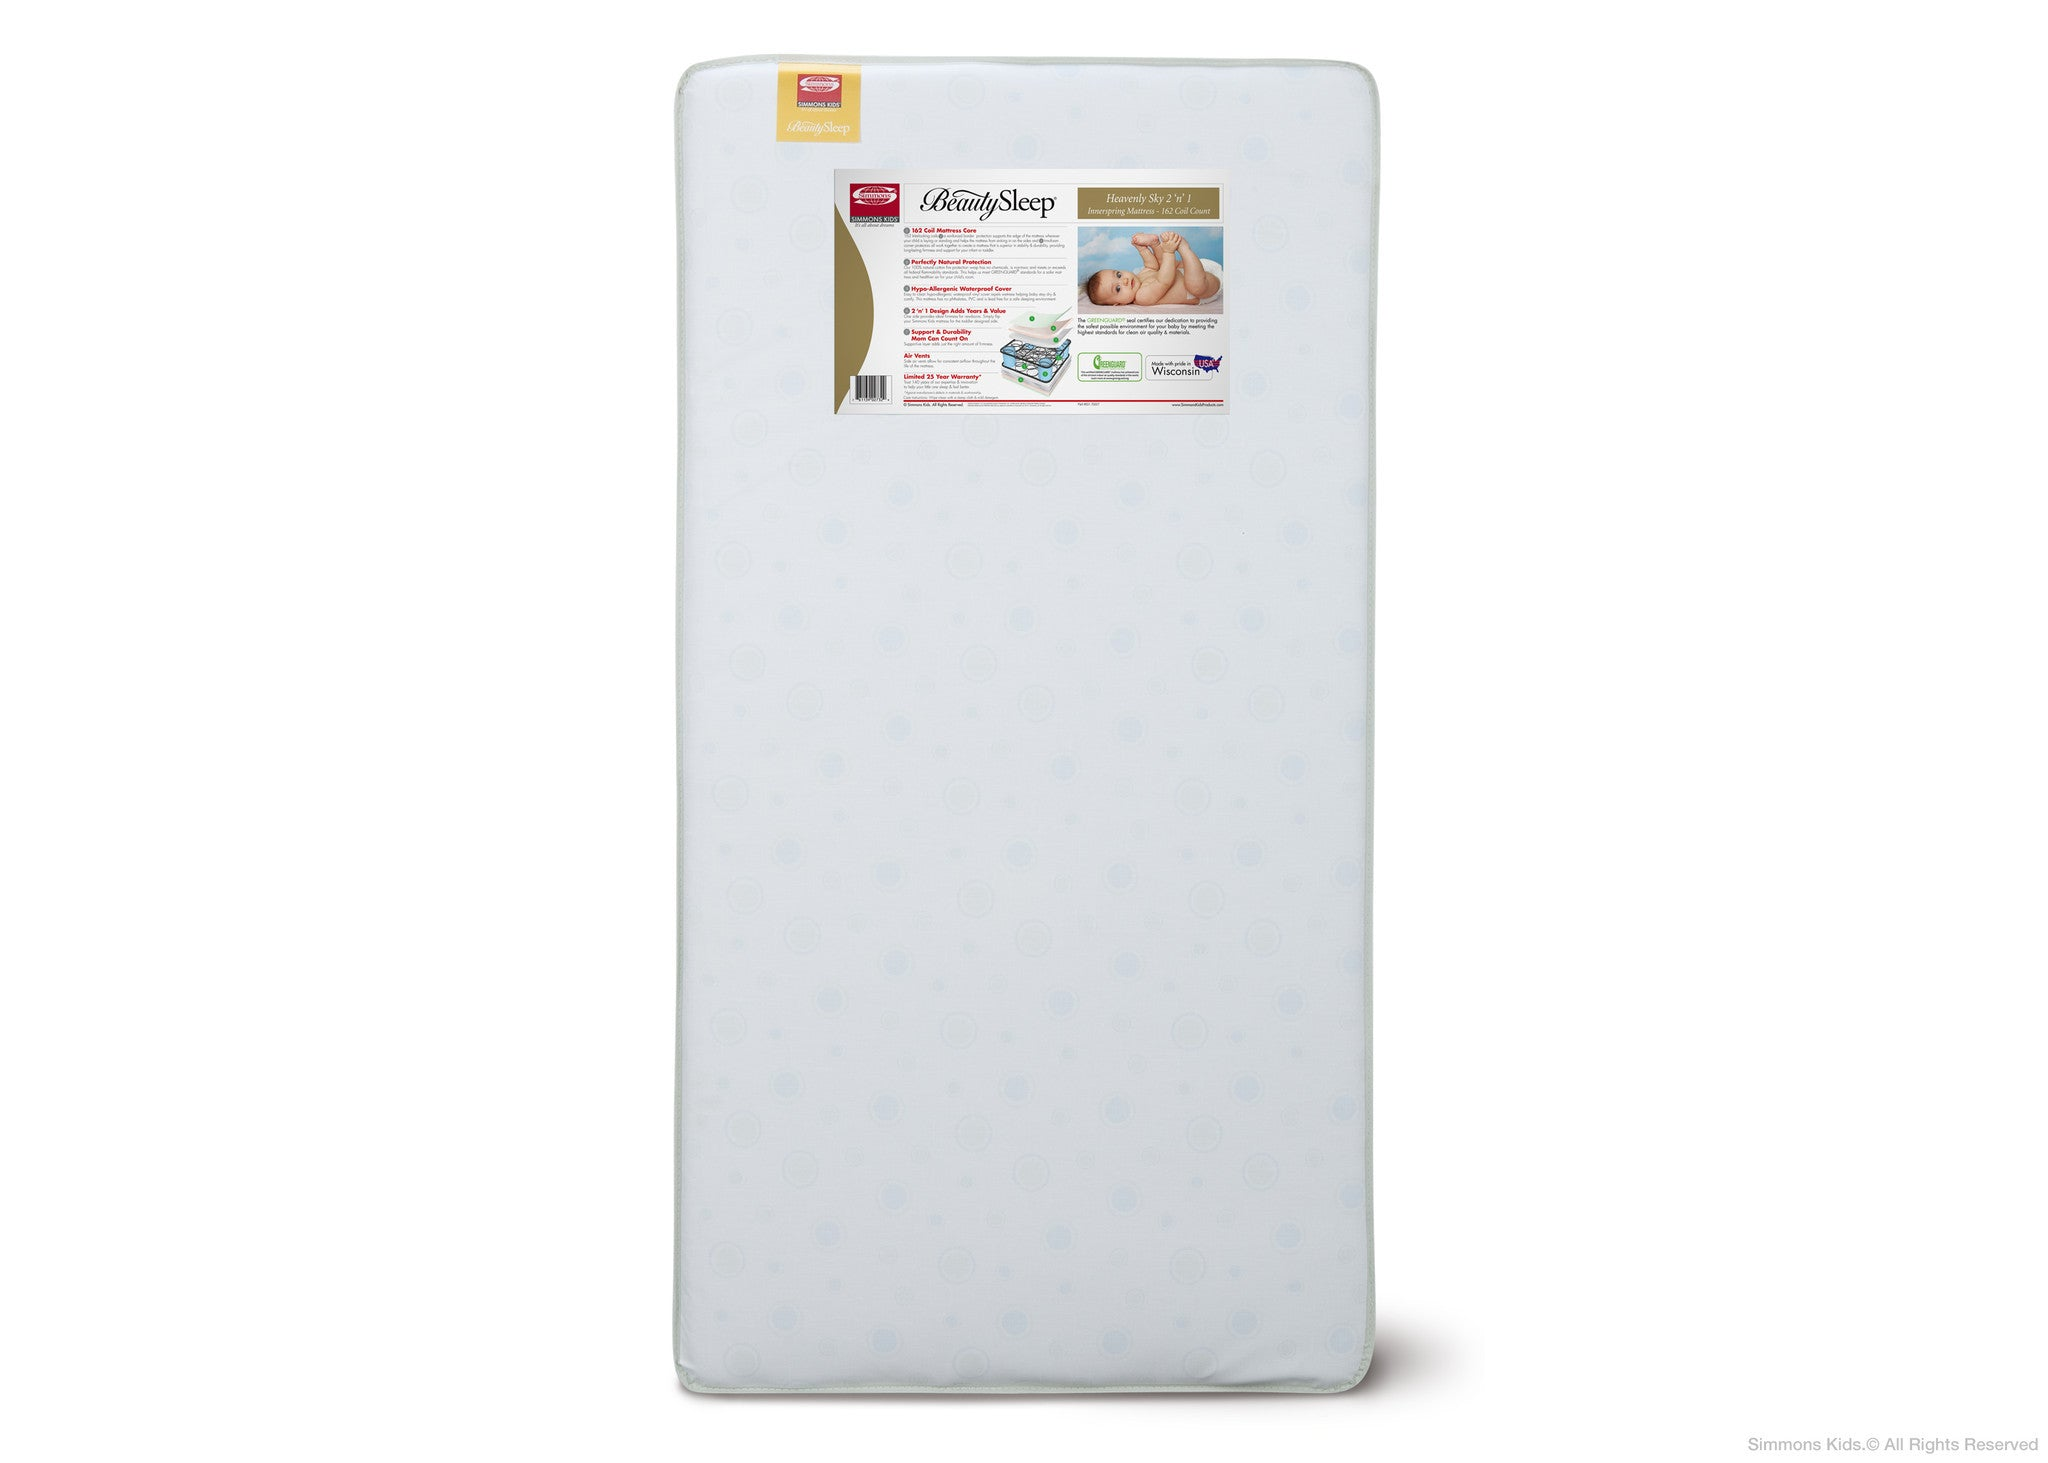 Heavenly Sky Infant Amp Toddler Mattress Simmons Kids